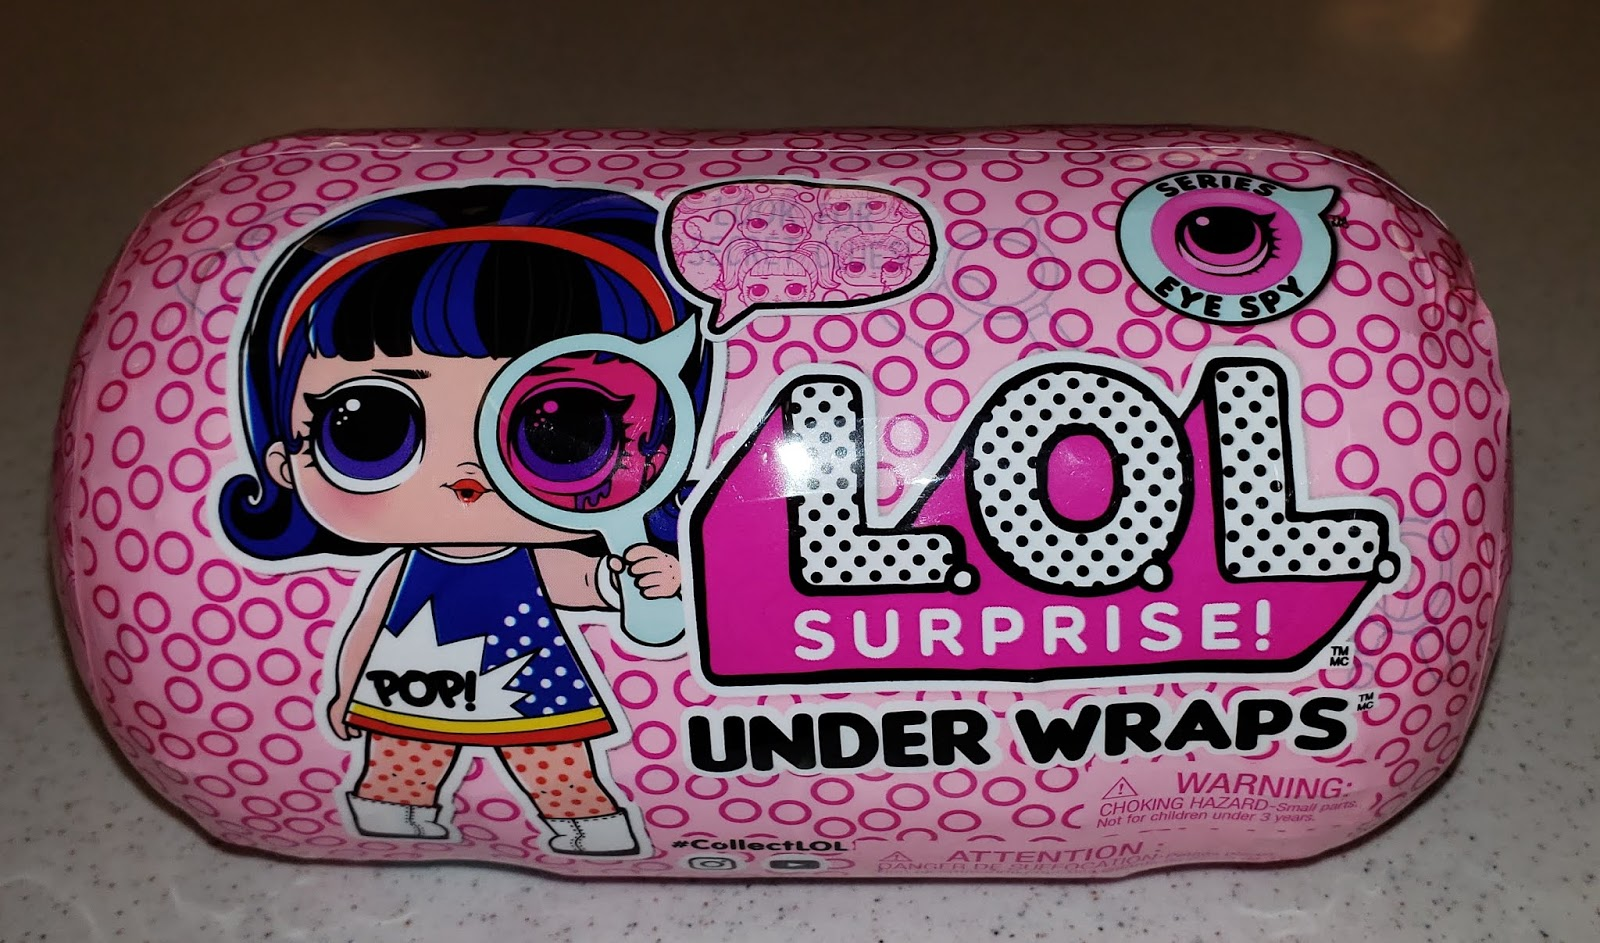 Original Dress clothes outfit  For LOL Surprise Doll Under Wraps 80's B.B DOLL